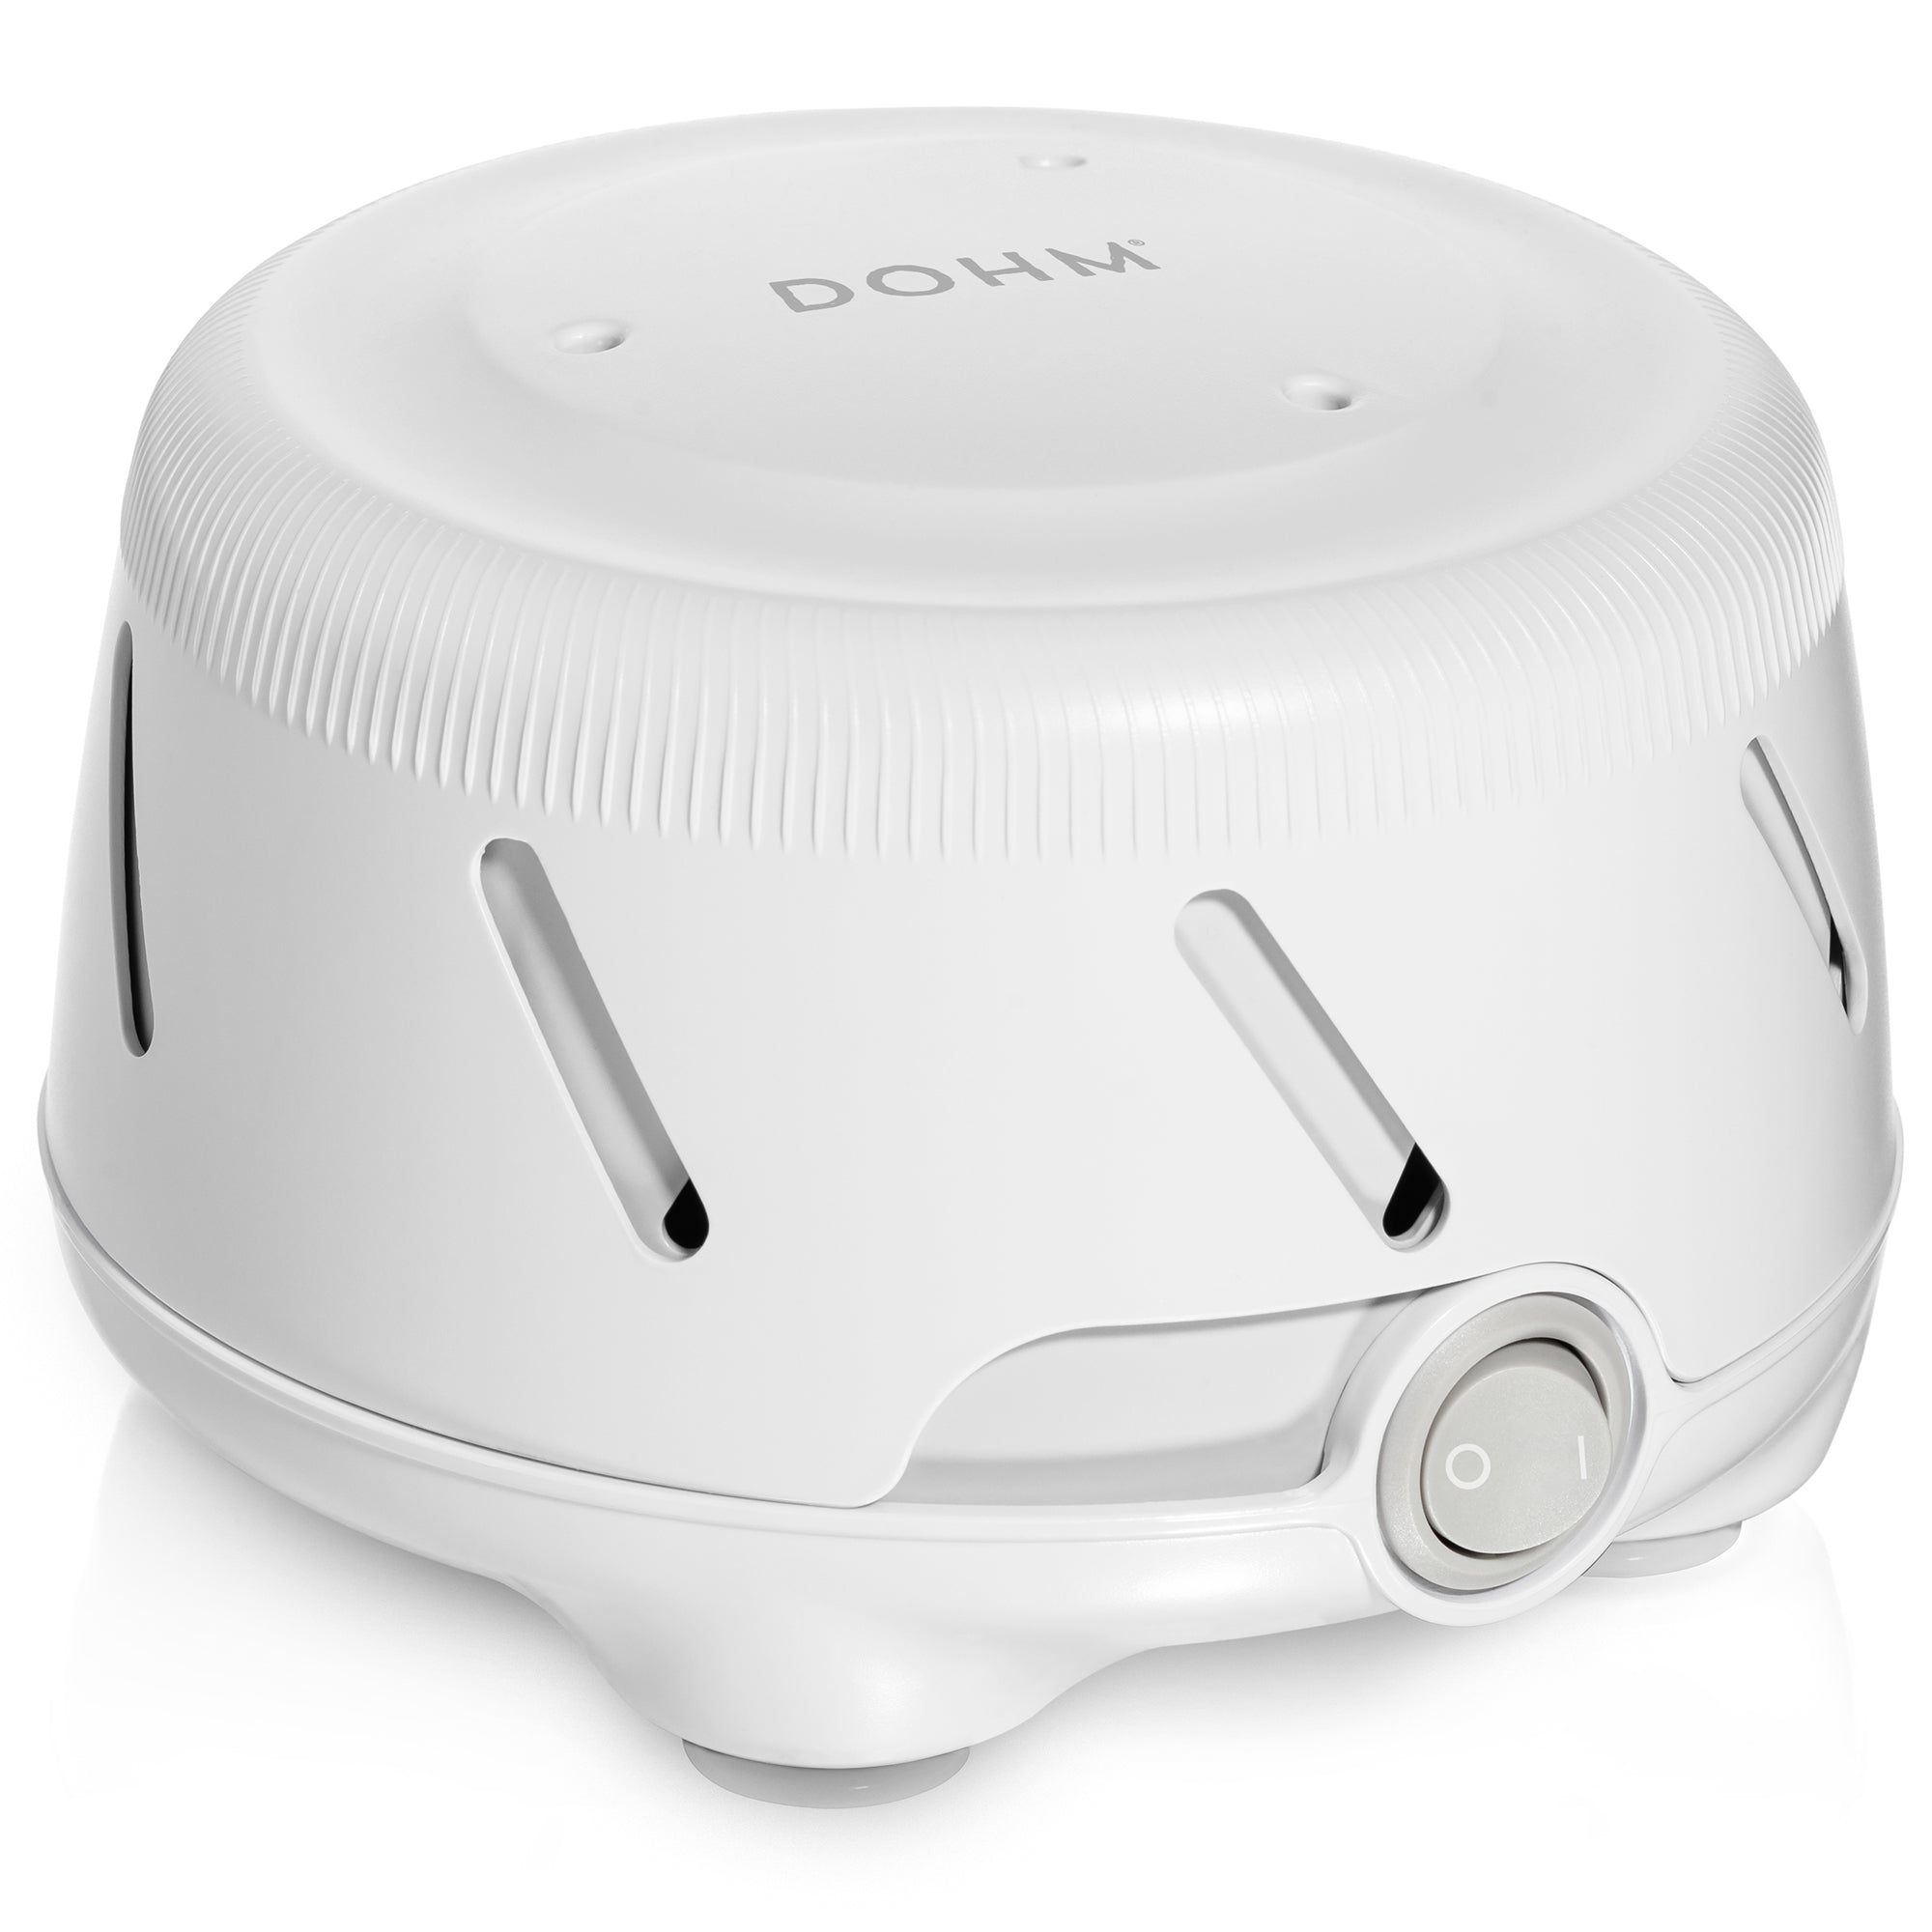 Dohm Uno Natural Sound Machines | Yogasleep